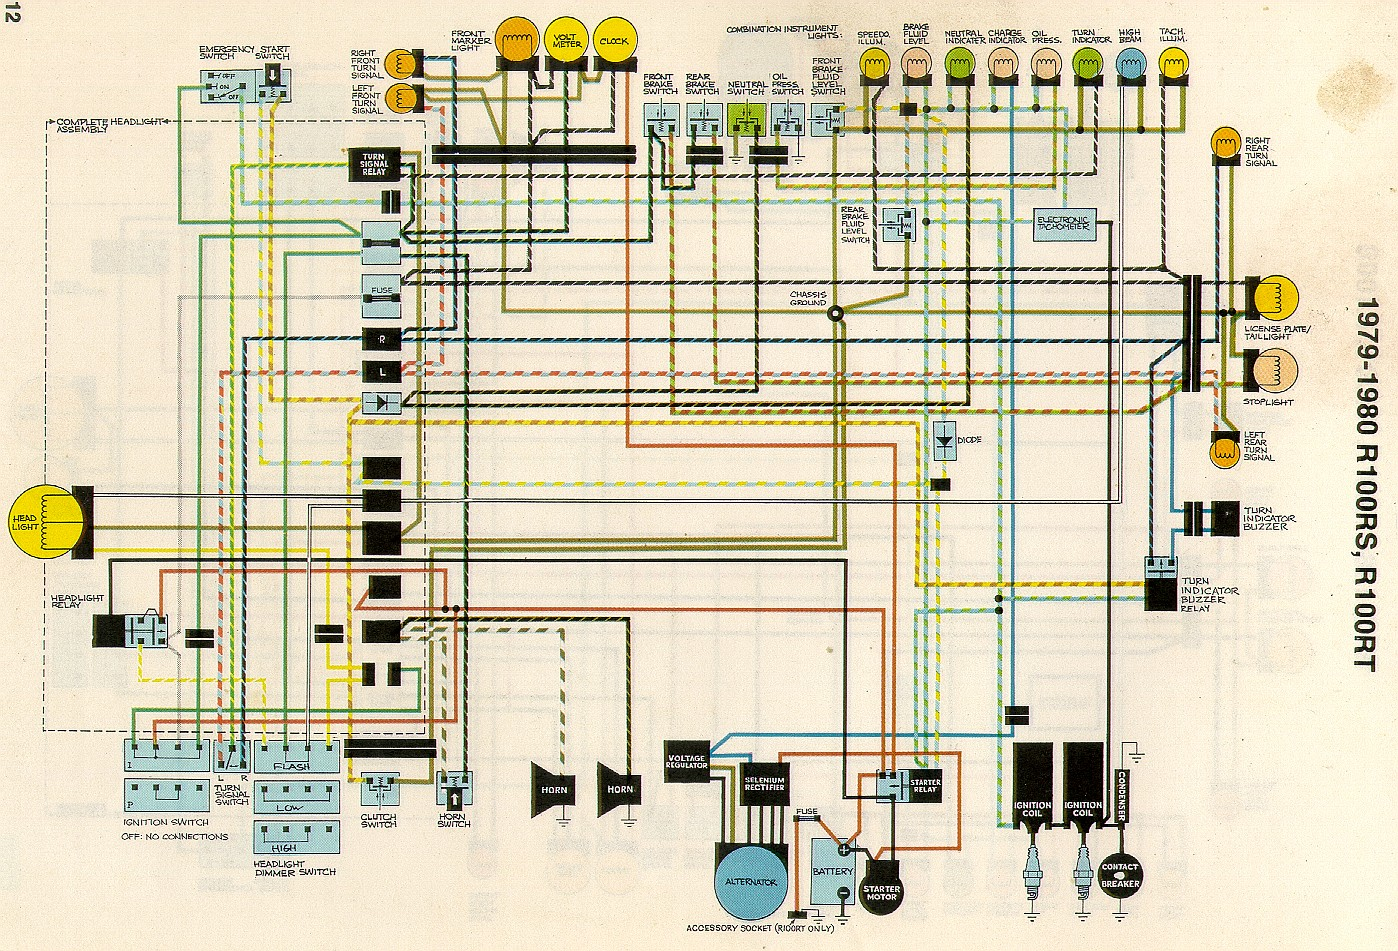 79rs 5 united articles wiring diagrams bmw r100rs gauge wiring diagram at edmiracle.co